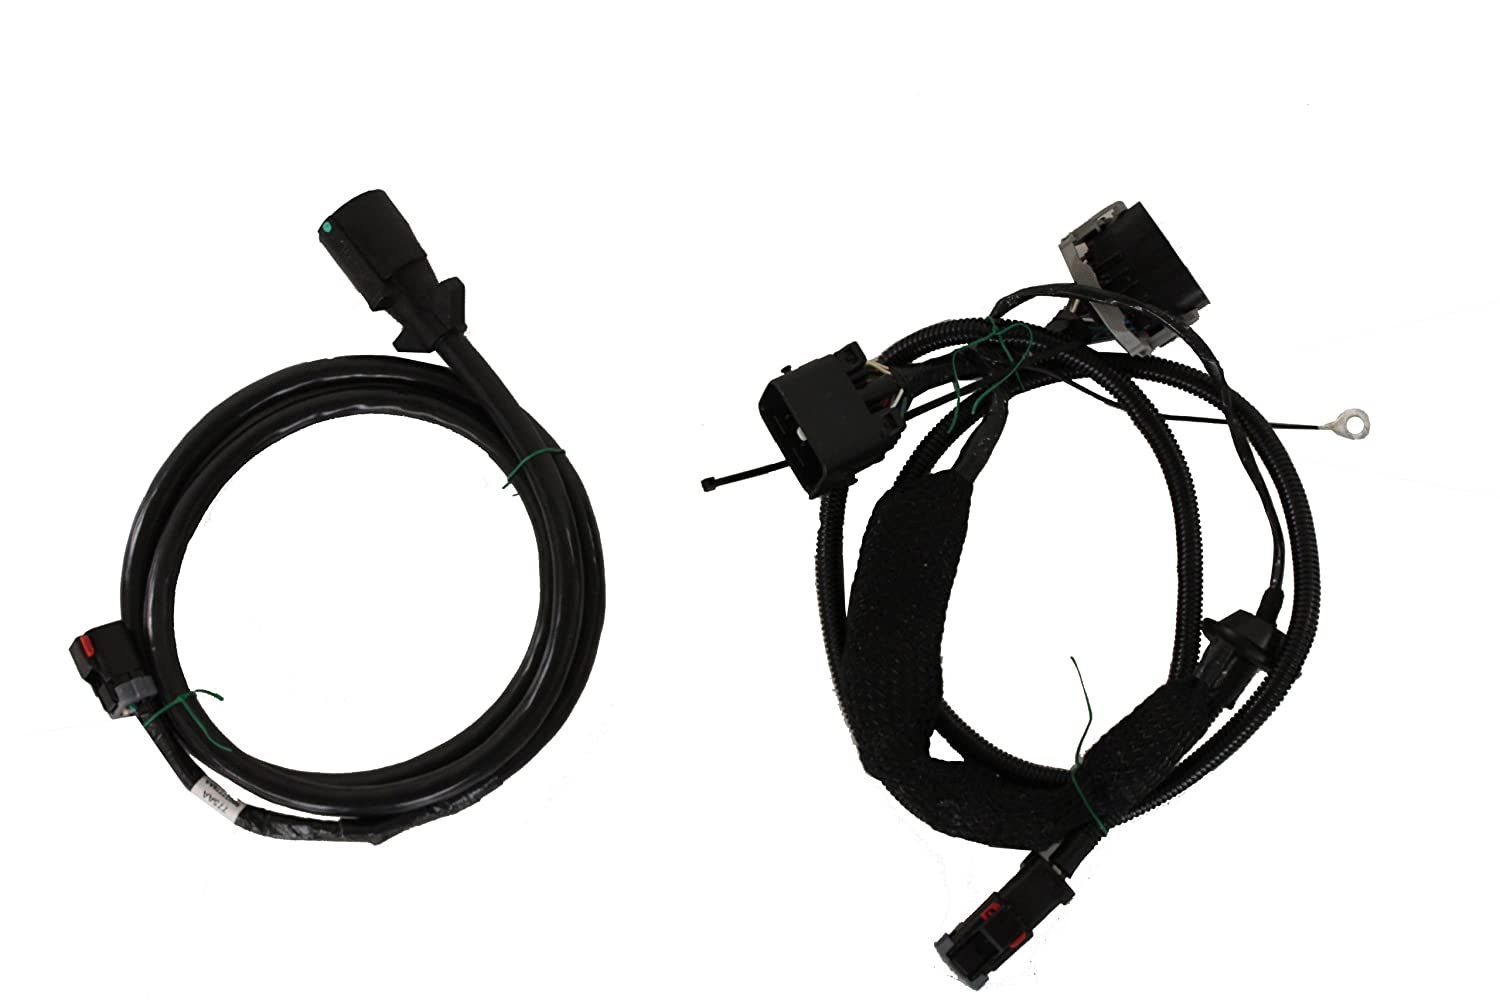 71x 3dYH2ML._SL1500_ amazon com 2007 2013 jeep wrangler tow vehicle wiring harness wiring harness for towing a jeep at n-0.co